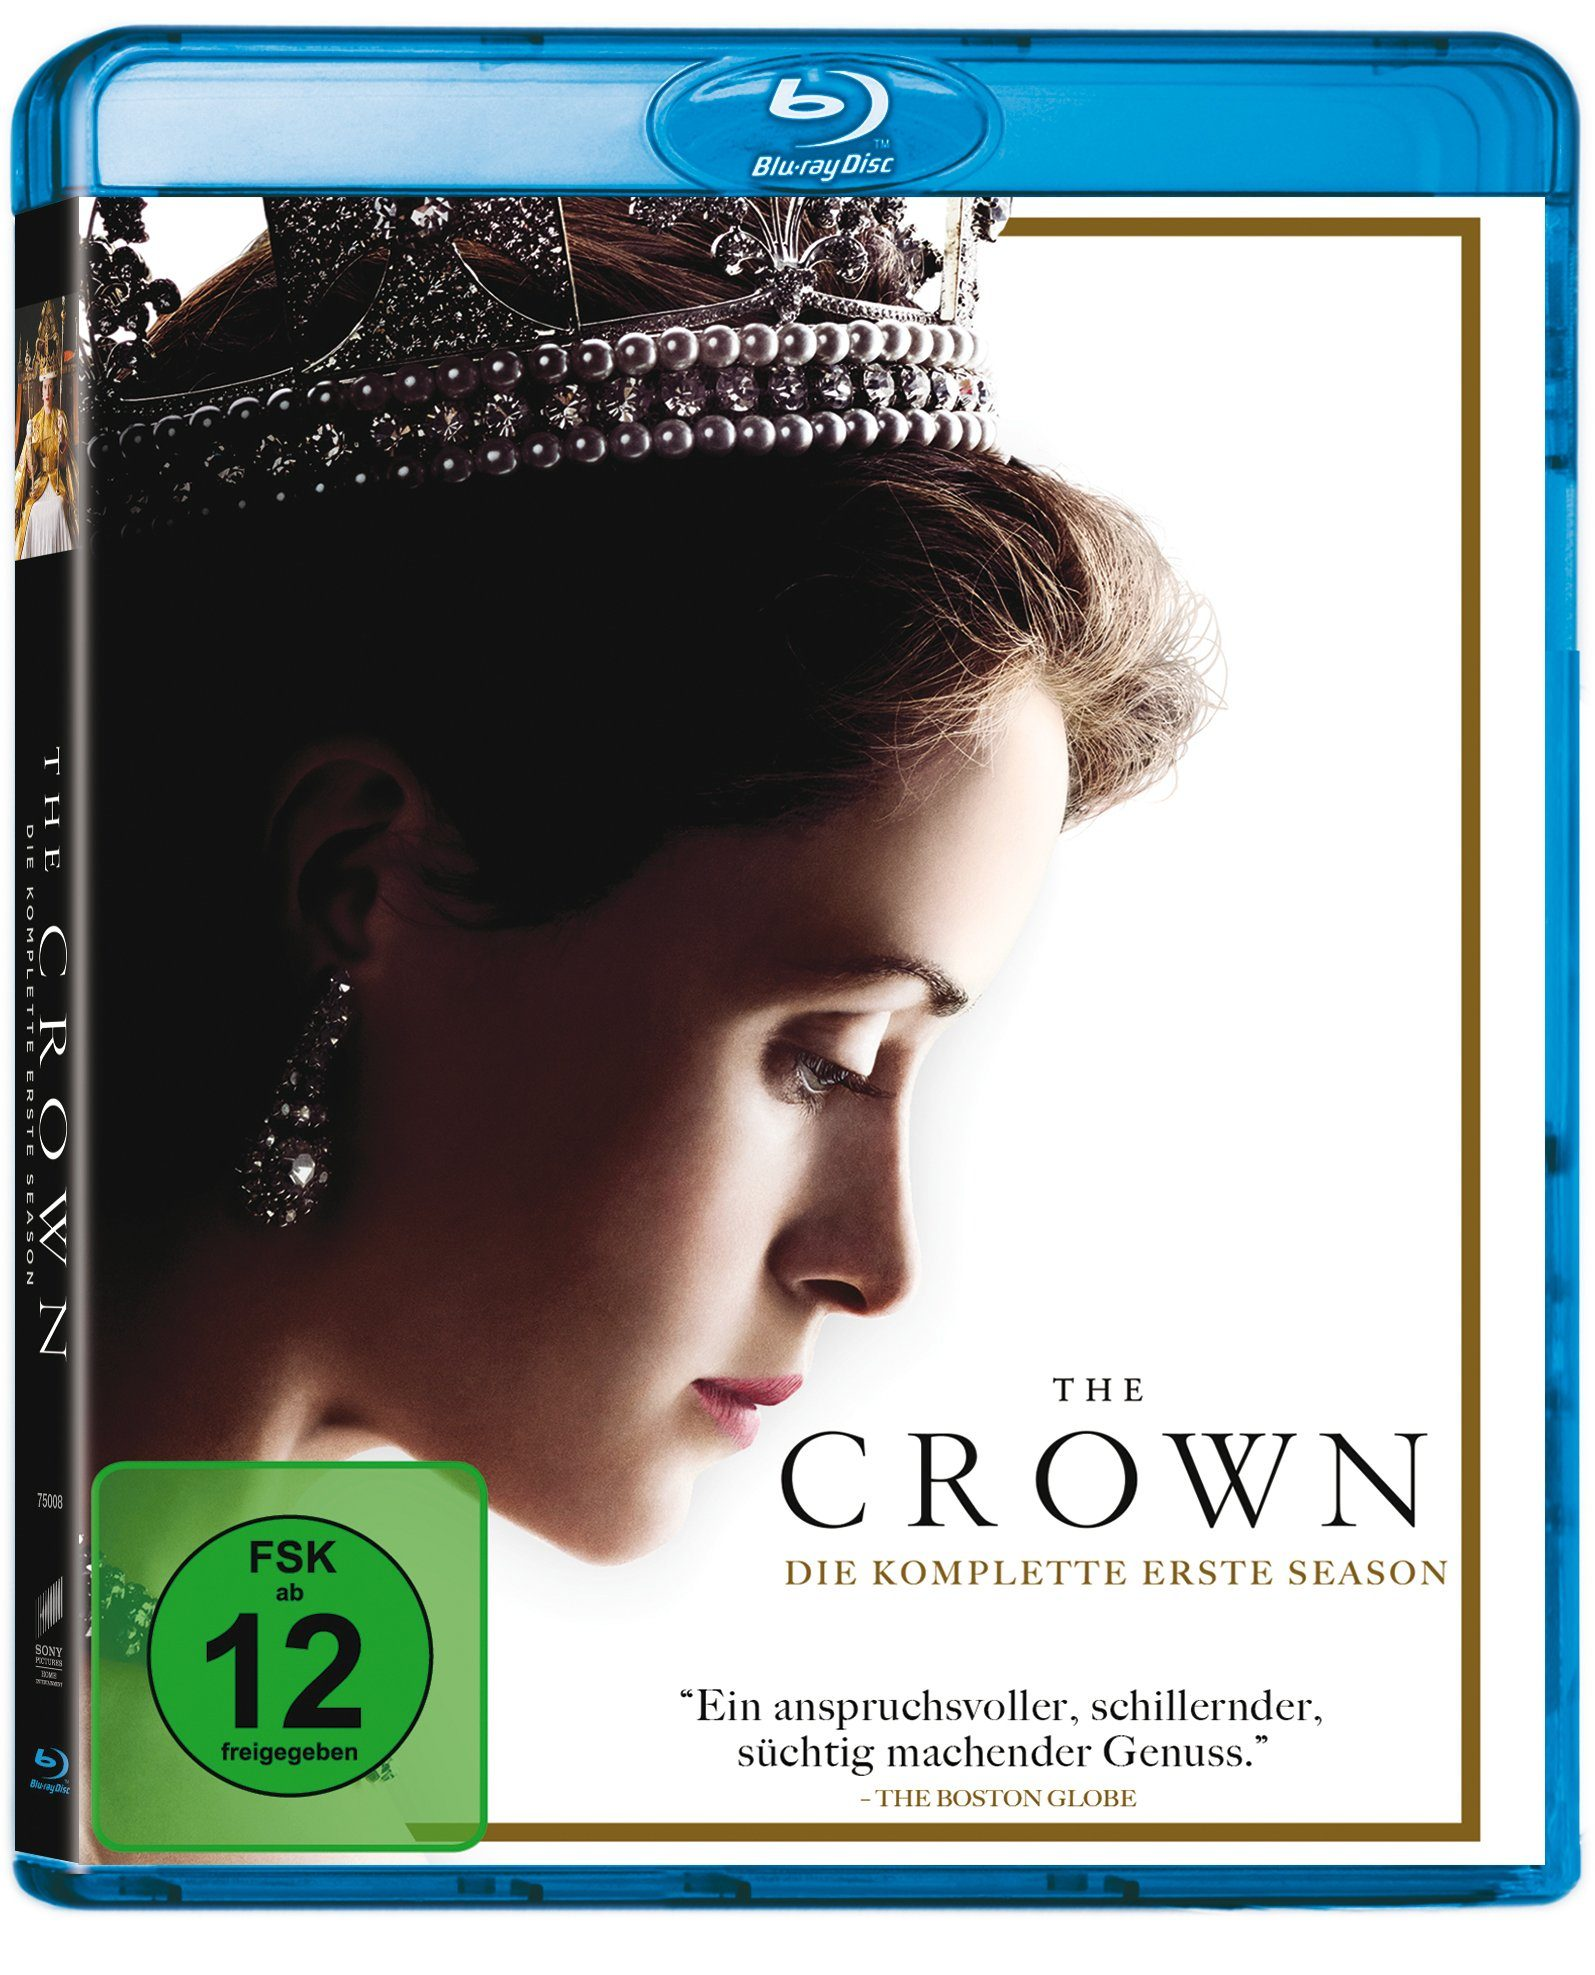 Sony Pictures Blu-ray »The Crown - Die komplette erste Season«